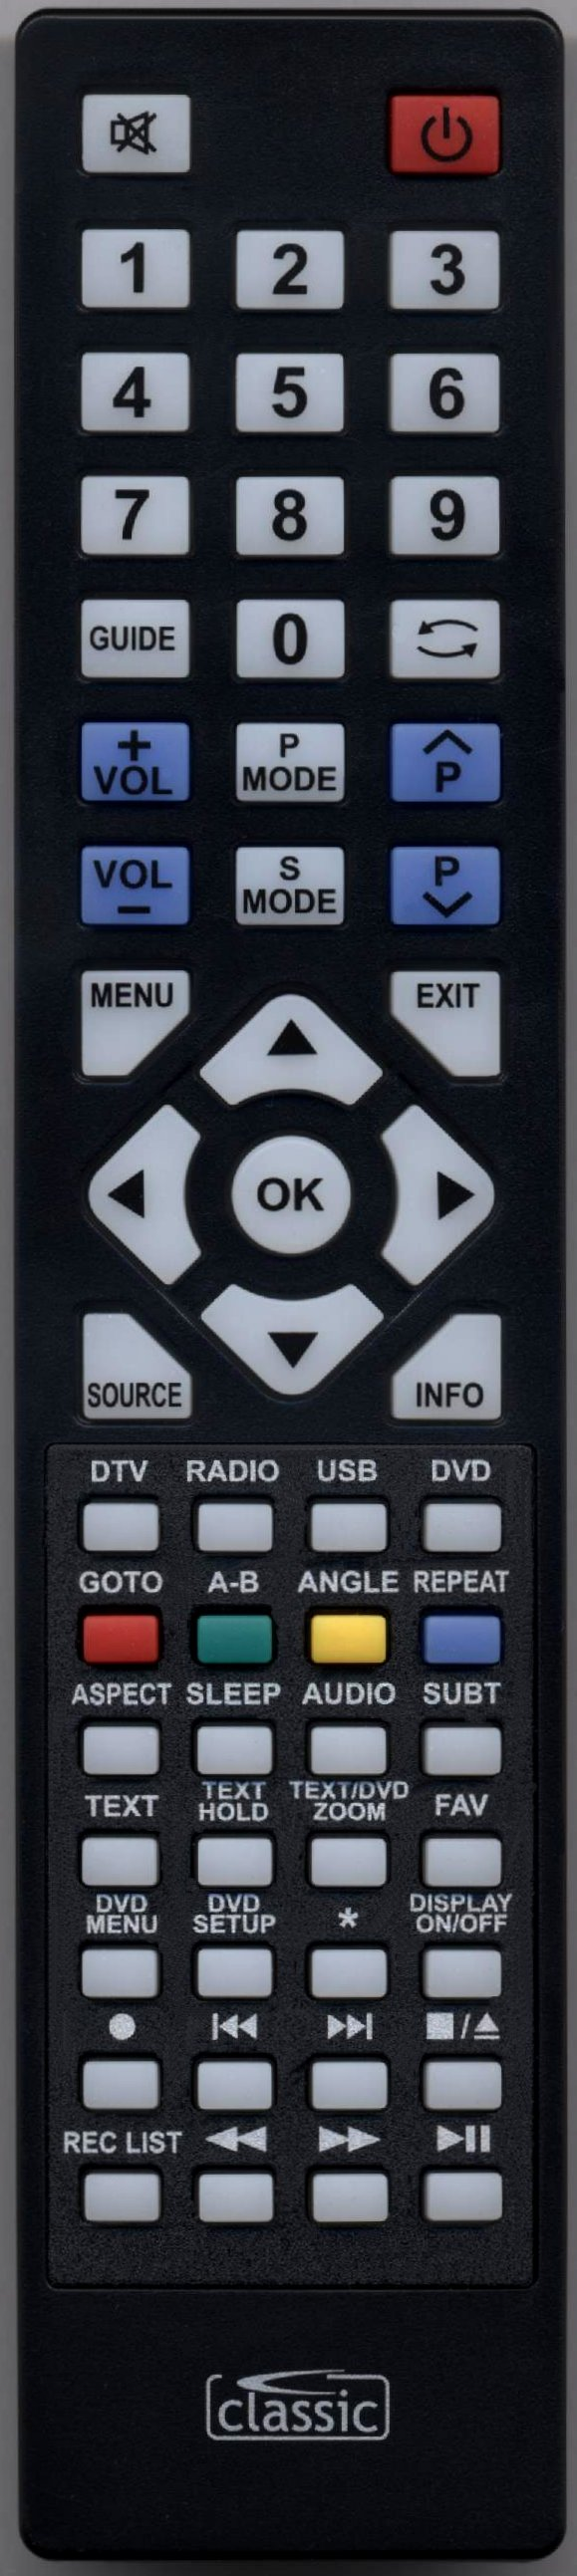 Blaupunkt 32/147I-GB-5B-FHKUP-UK Remote Control Alternative